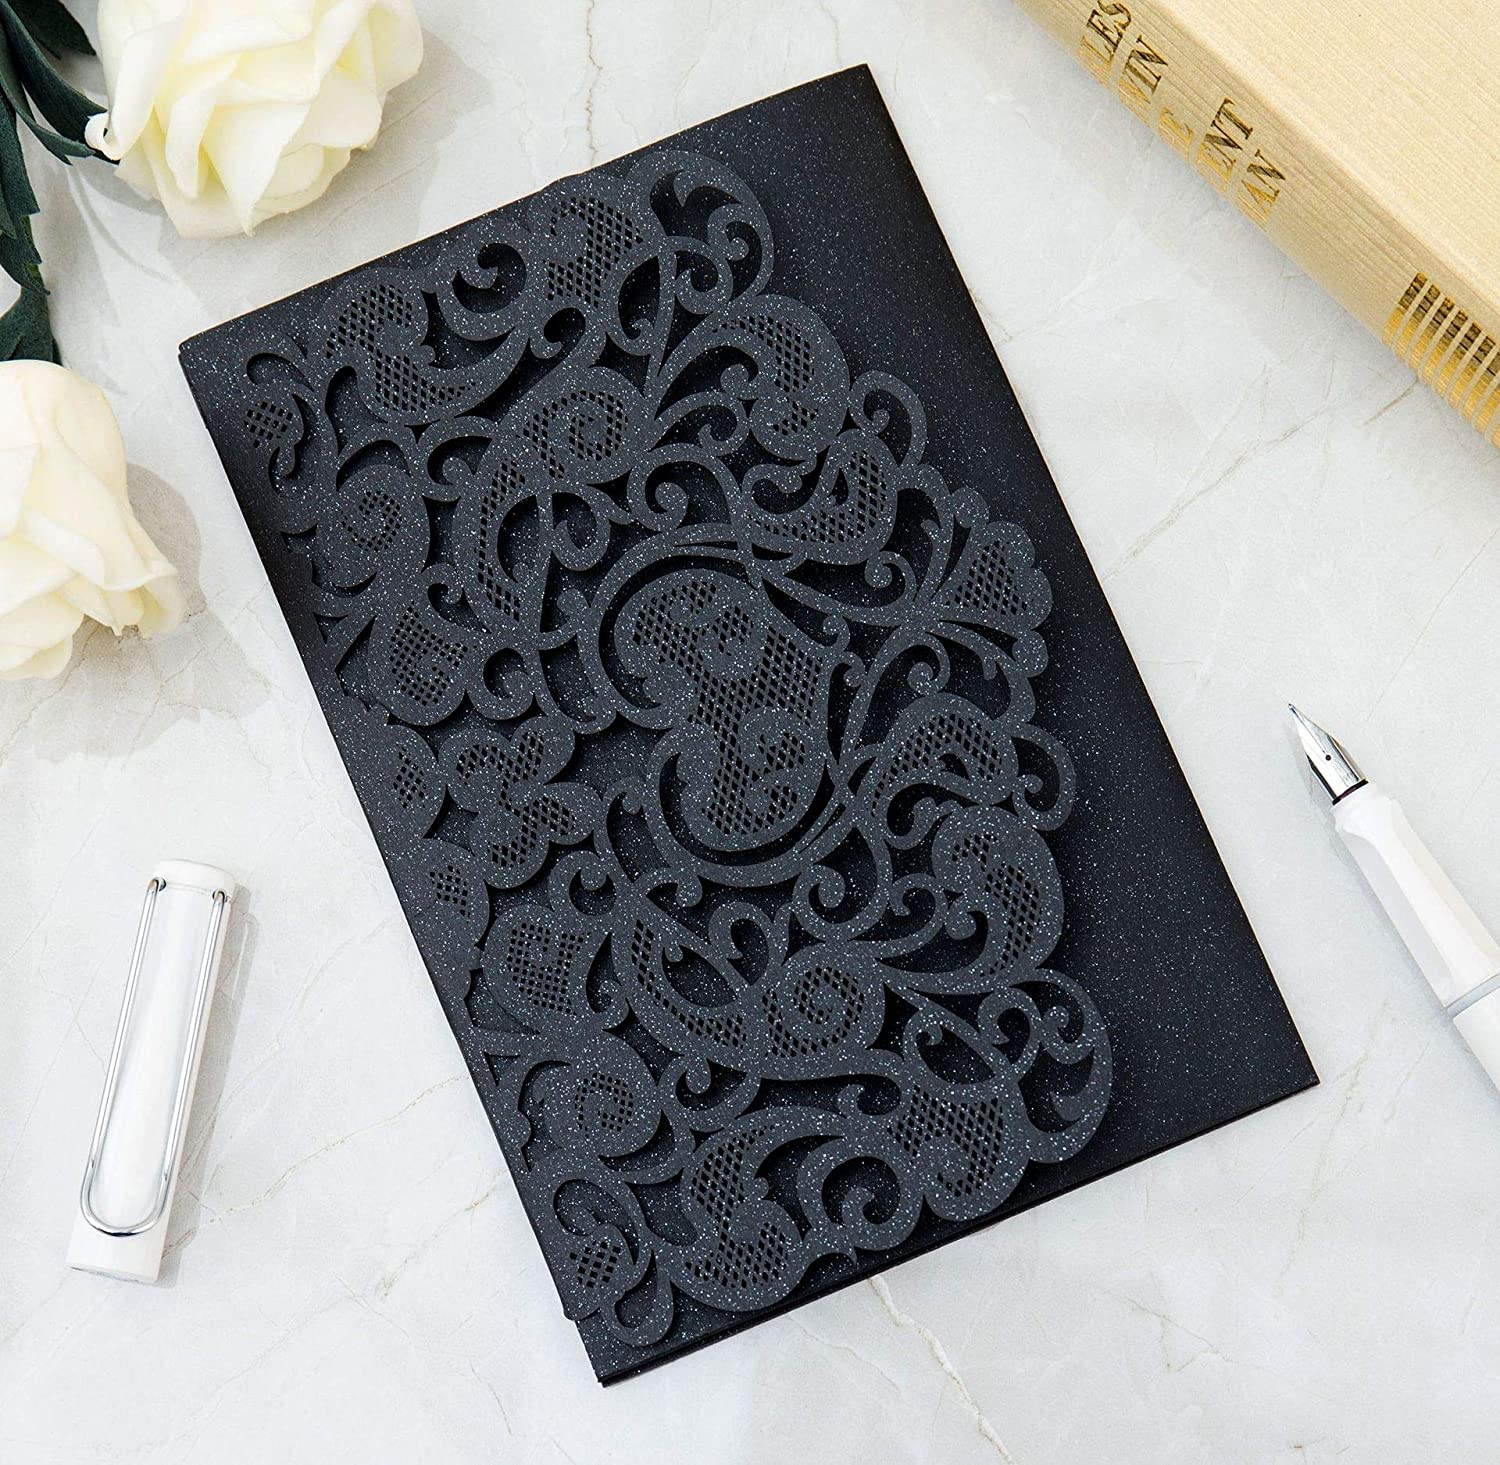 Amazon.com: DH-LINK Wedding Invitation Cards Laser Cut Floral Design Invites  Pocket for Bridal Showers, Engagement Parties, Invitation Covers(Black,100pcs):  Kitchen & Dining